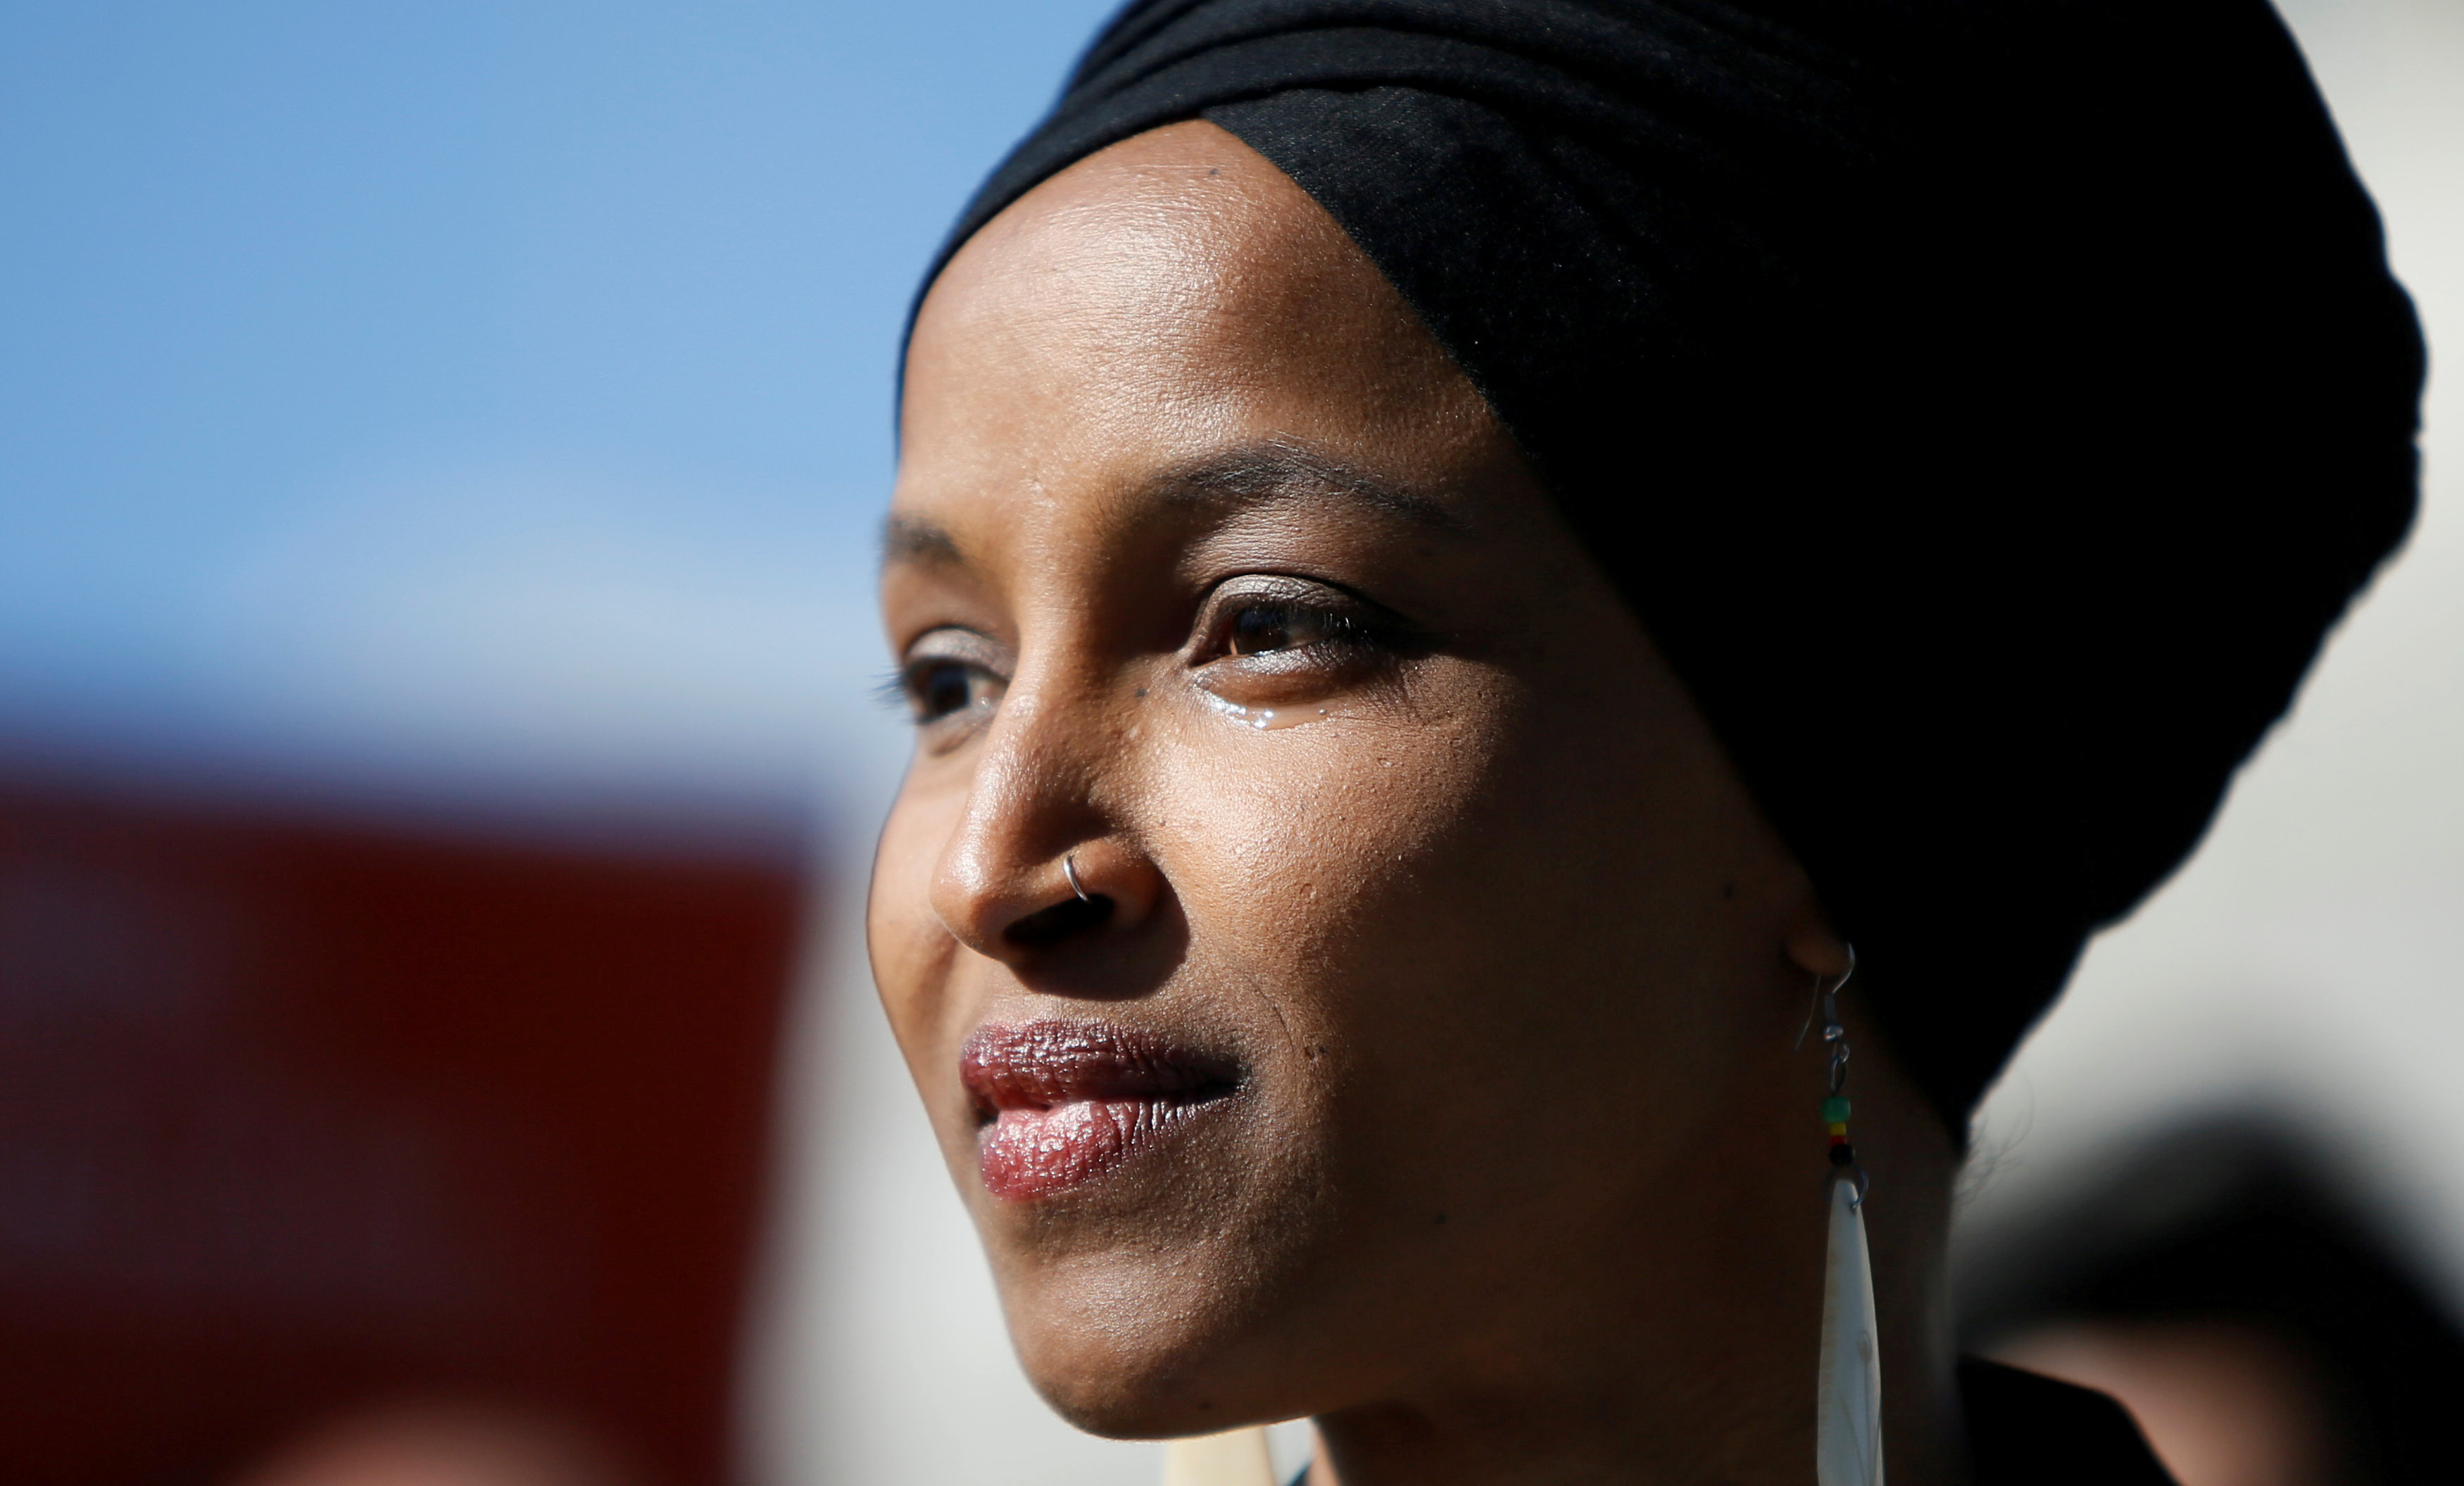 Some people did something': Rep  Omar's remarks in context